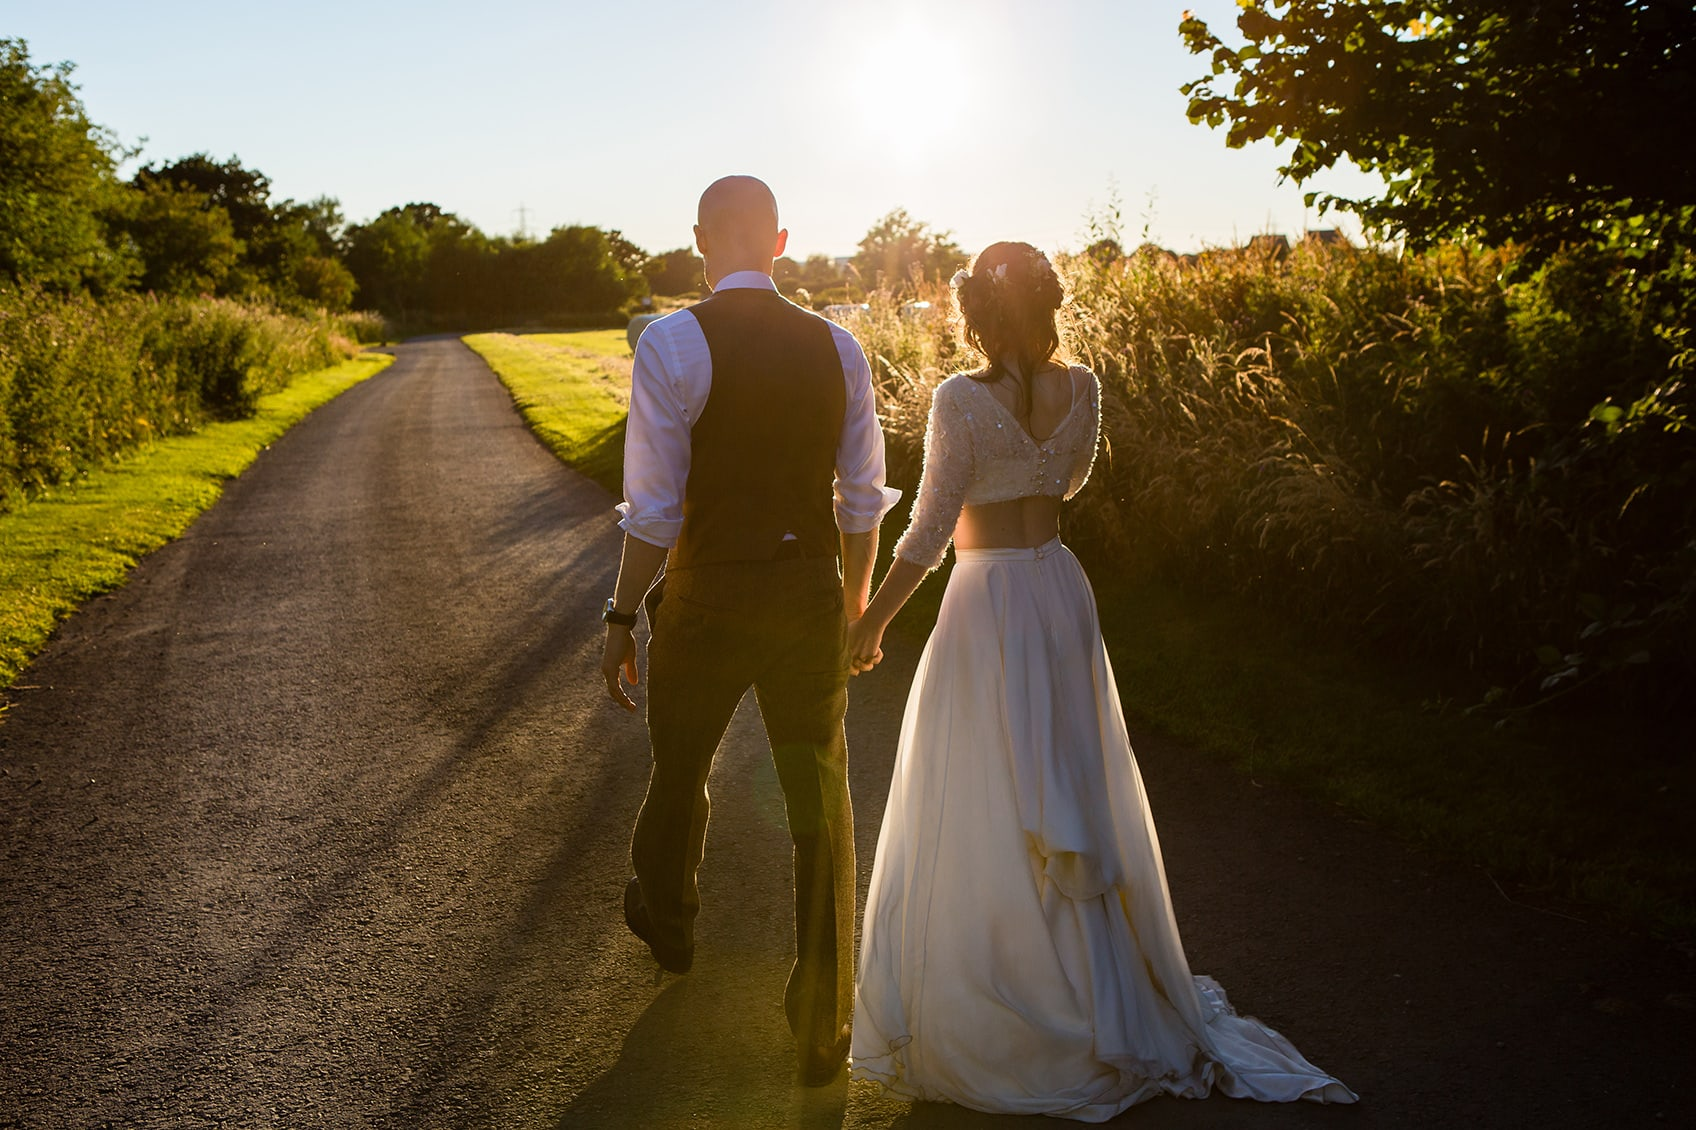 Shustoke Barn wedding photography; Couple holding hands walking